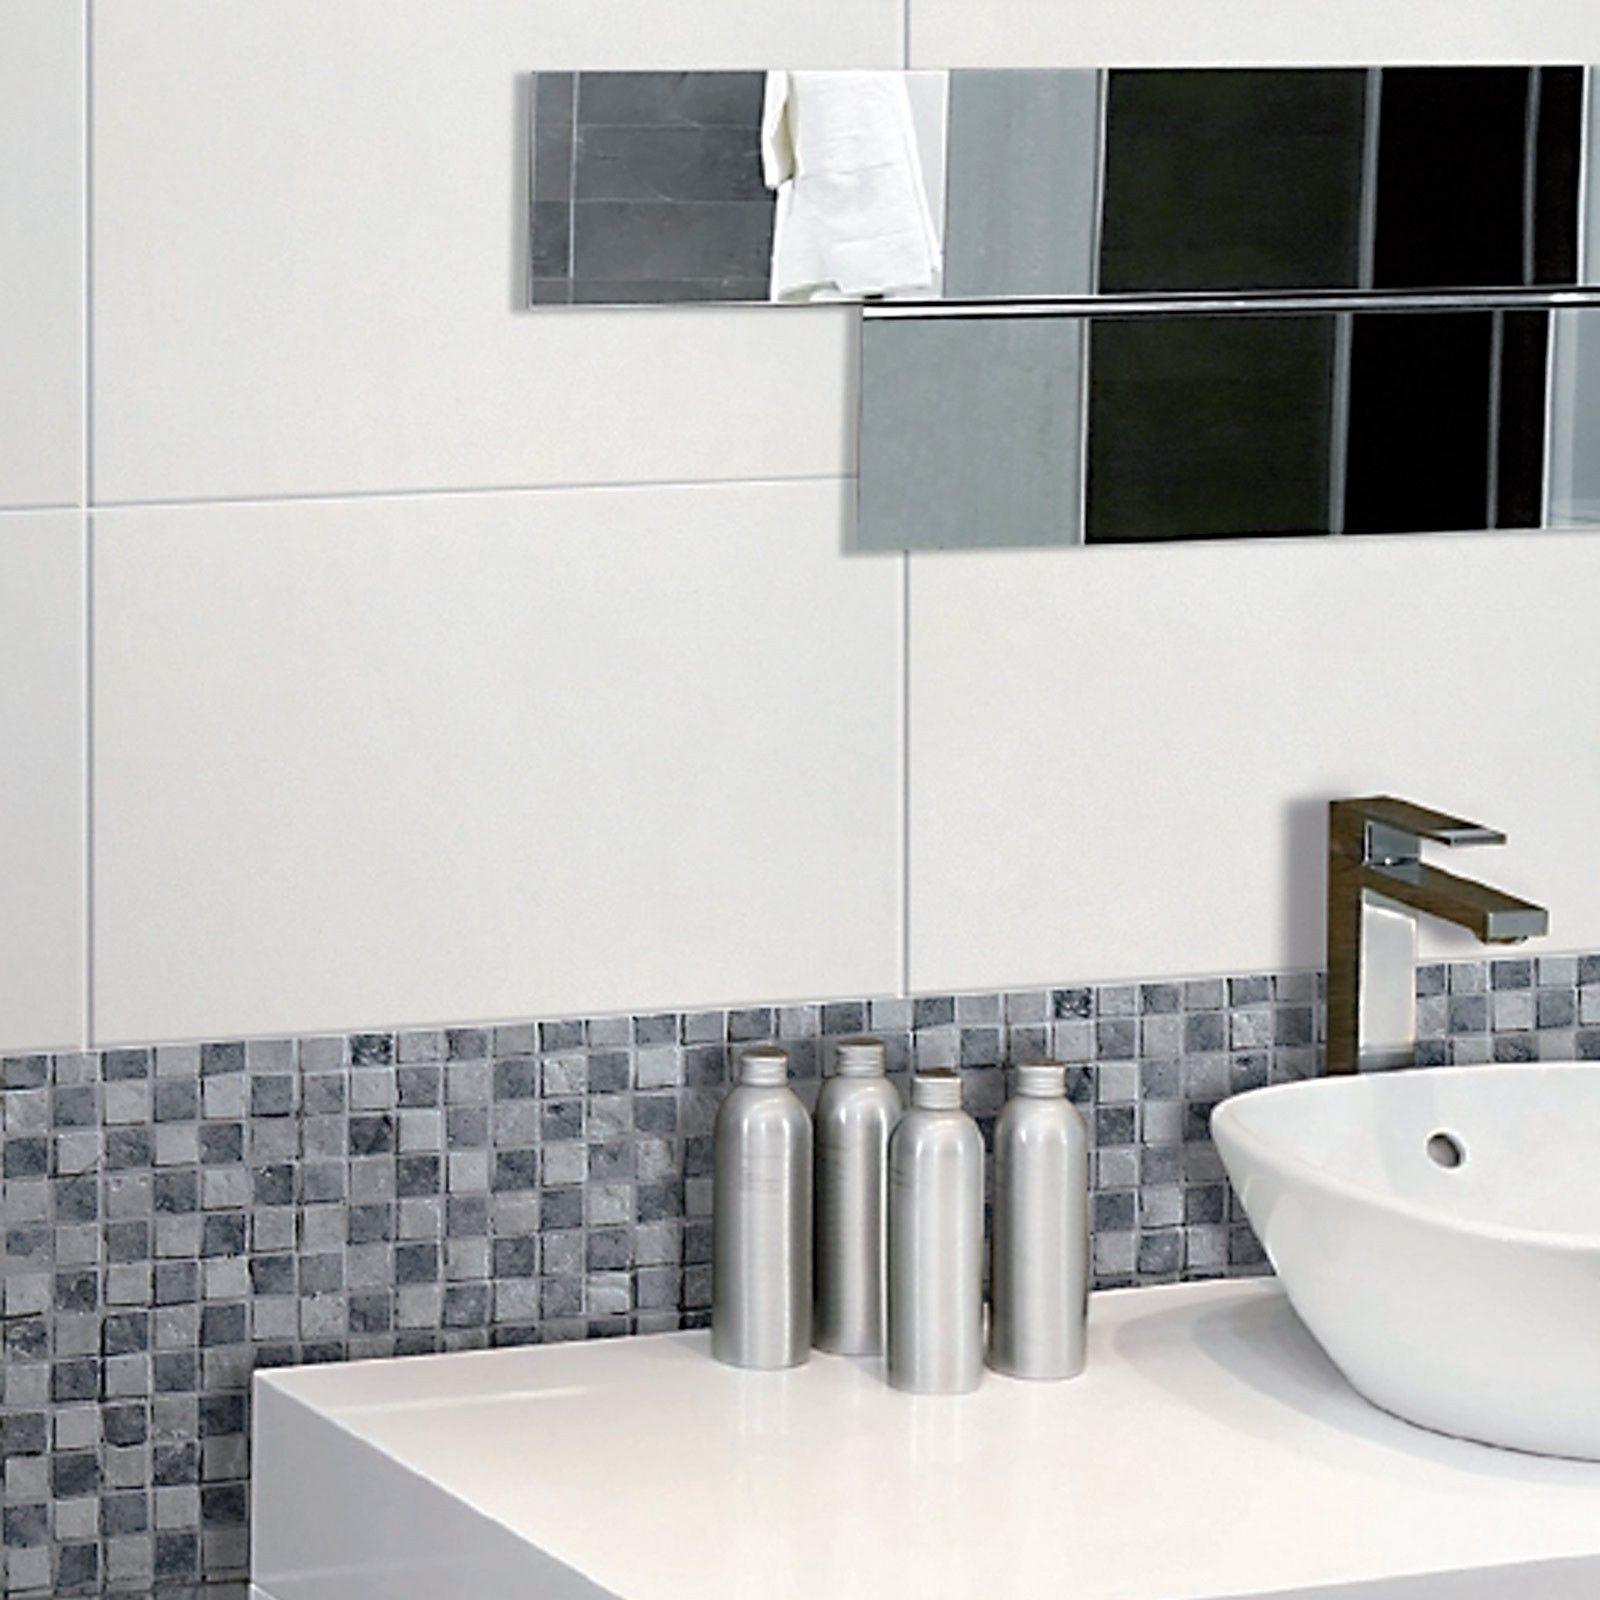 Tuscany White Gloss Rectified Wall Tile Black White Bathrooms Amazing Bathrooms Wall Tiles